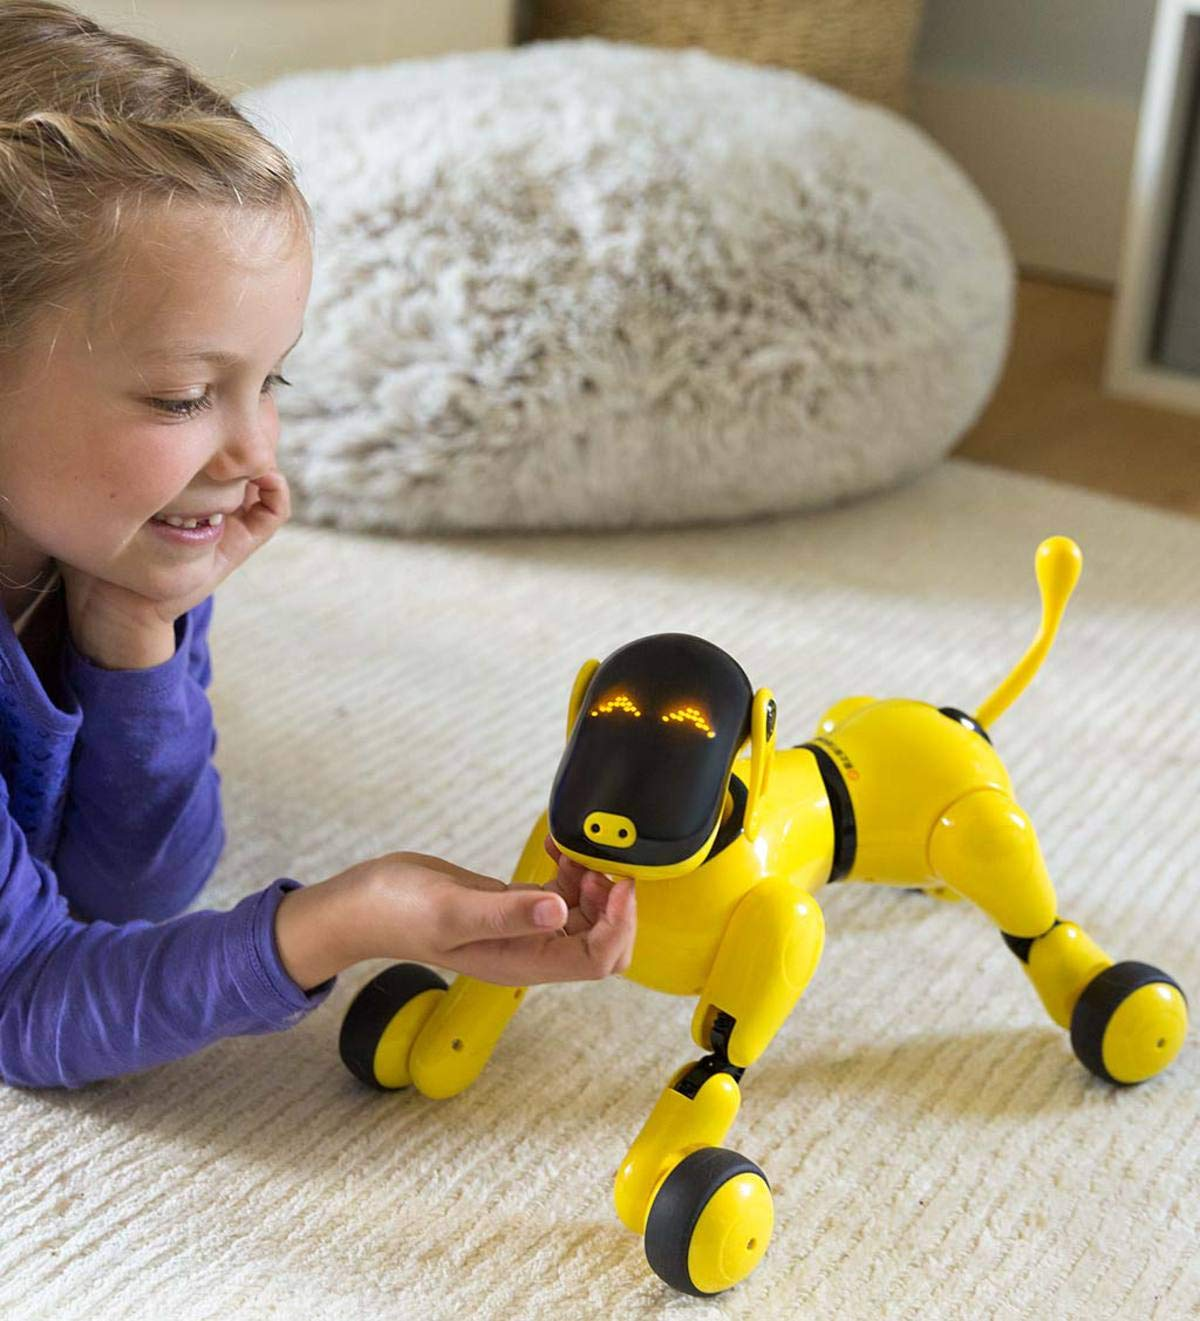 HearthSong Gizmo The Voice Controlled Robotic Dog - Electronic Pet Toy for Kids - 13 L x 5 W x 7'' H, Yellow by HearthSong (Image #1)